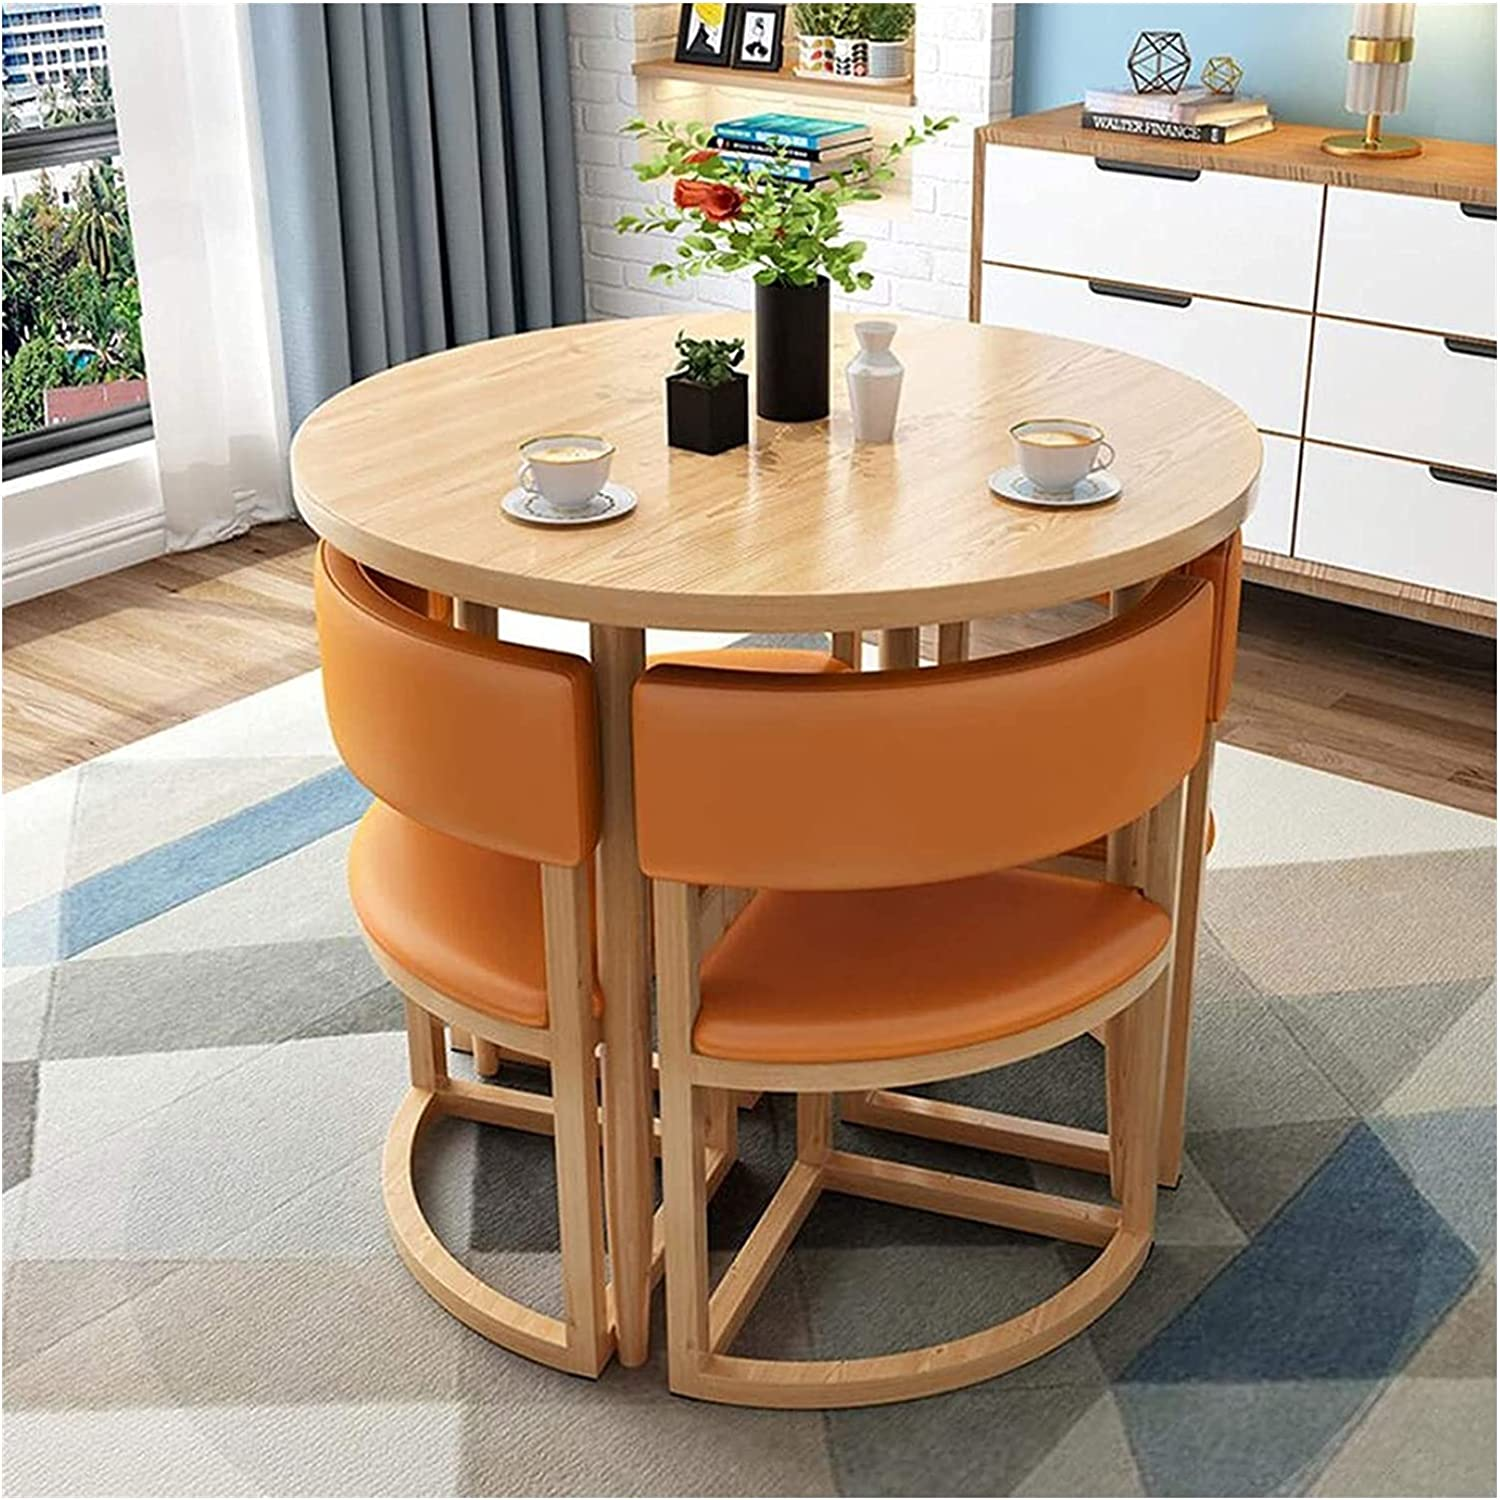 Farmhouse Style Dining Table Chair Combina Today's only Online limited product Set and